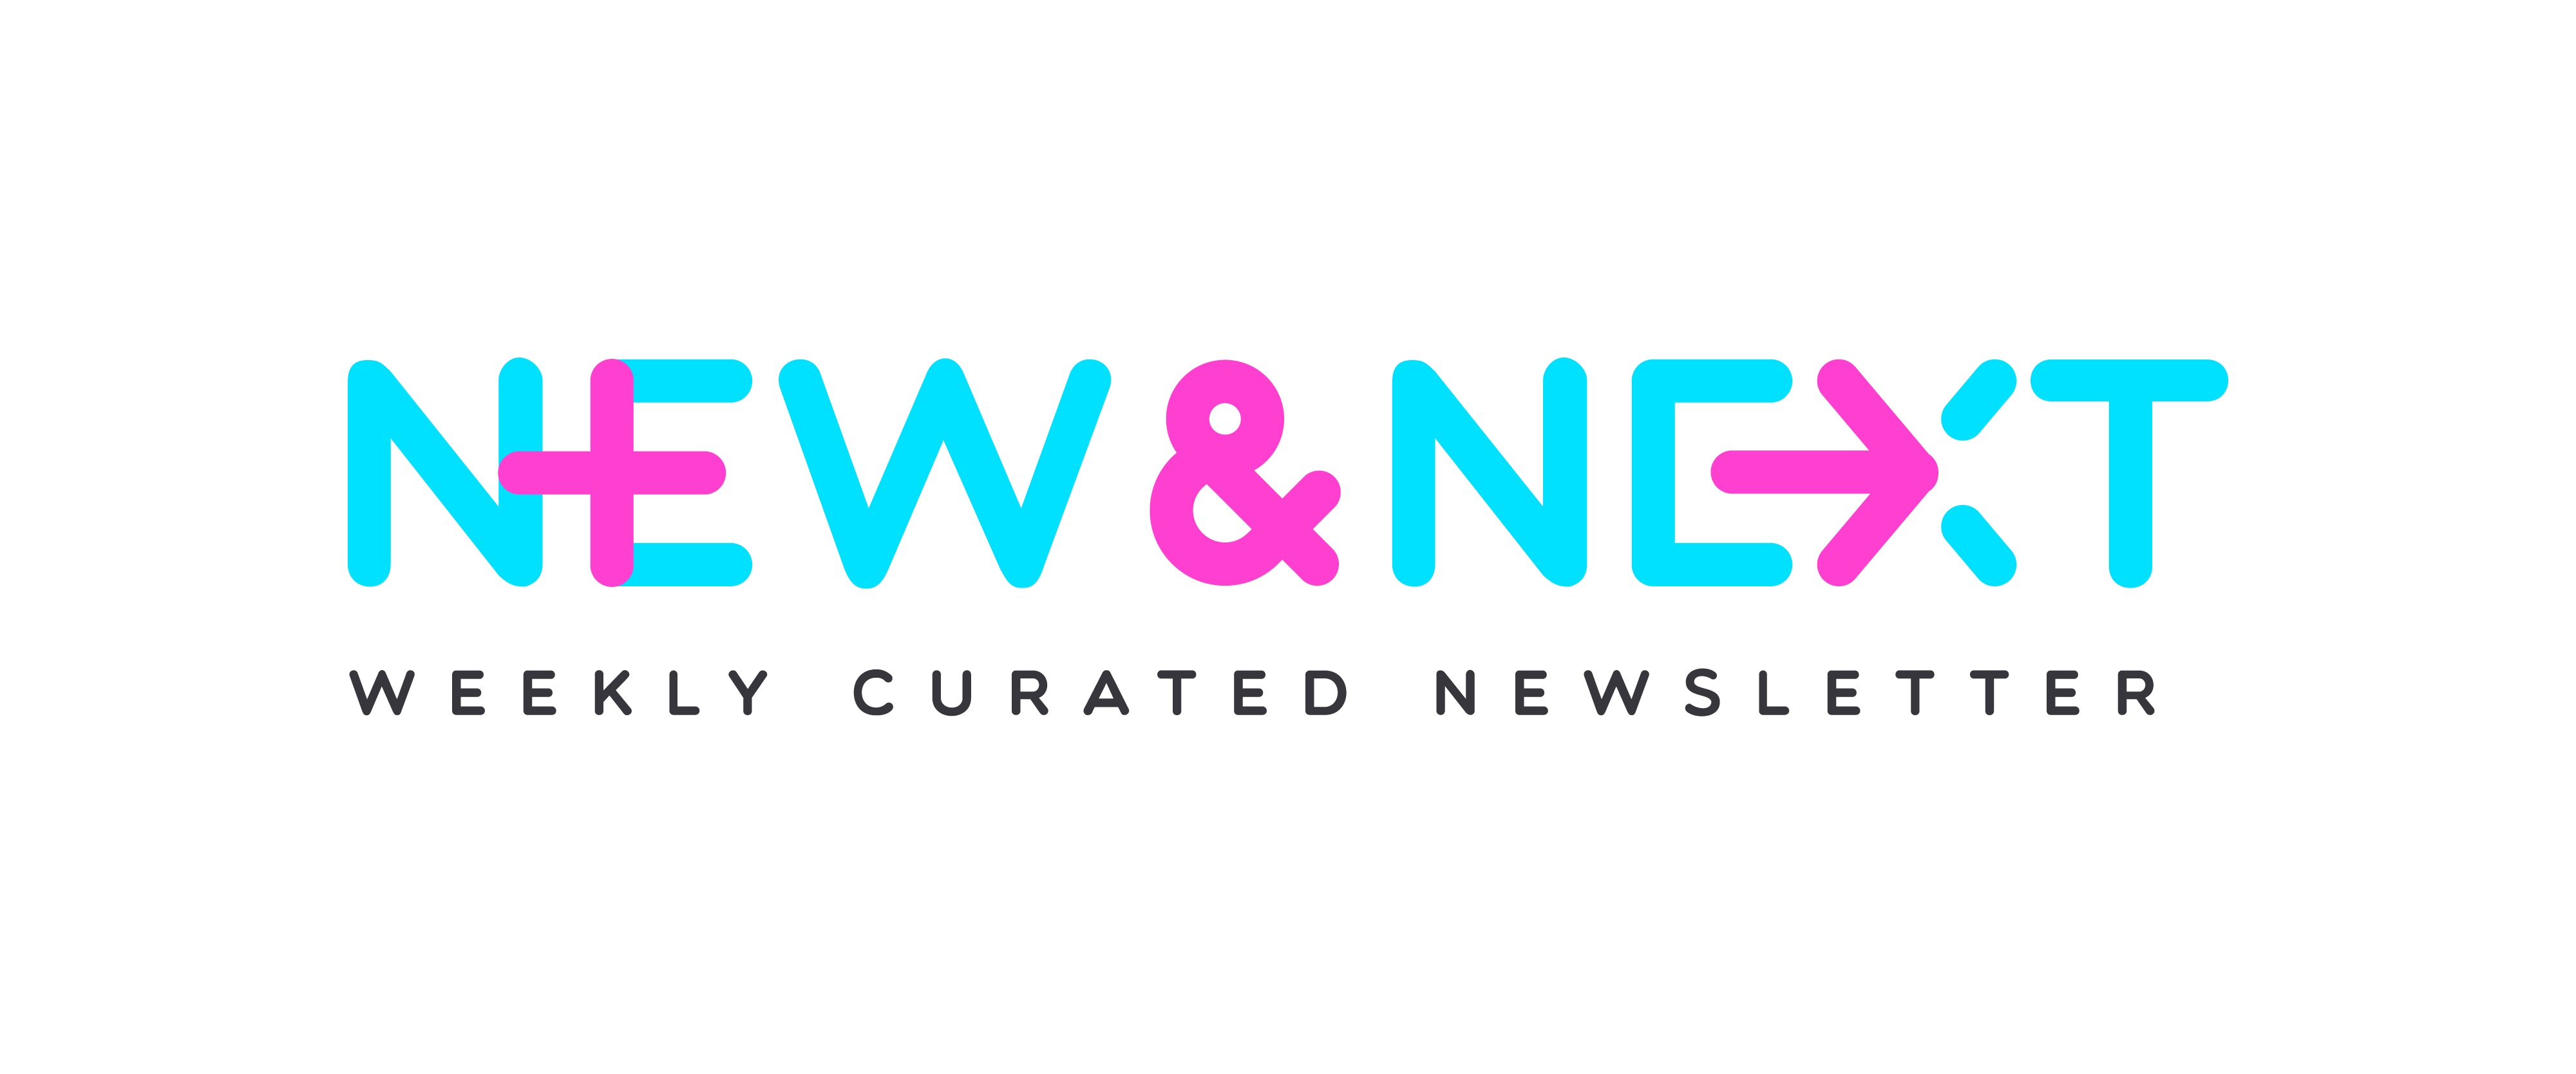 "Design a fun logo for a weekly newsletter, called ""The New and the Next"""